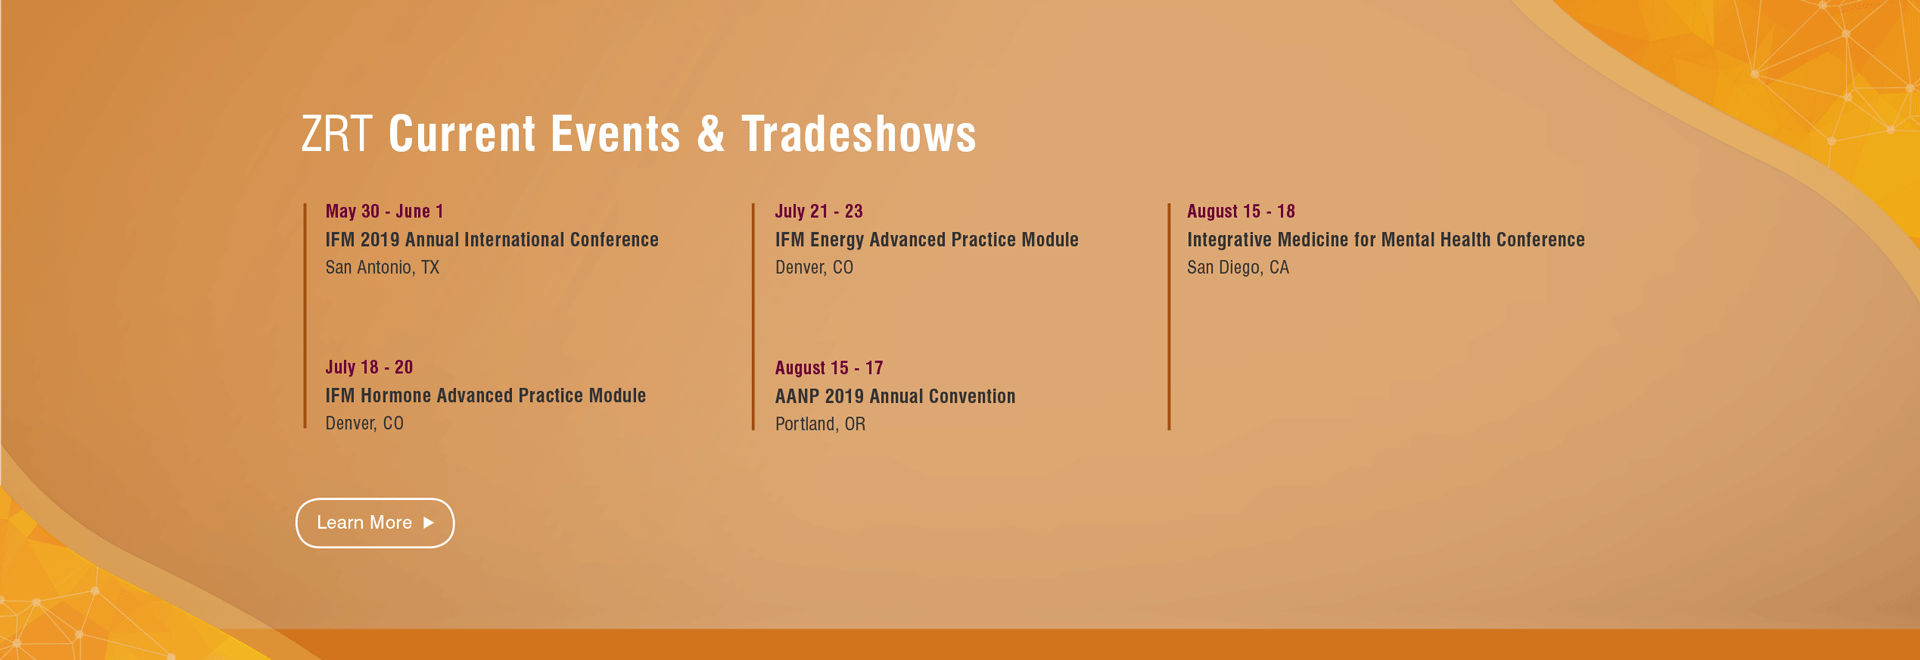 ZRT Laboratory Events and Trade Shows